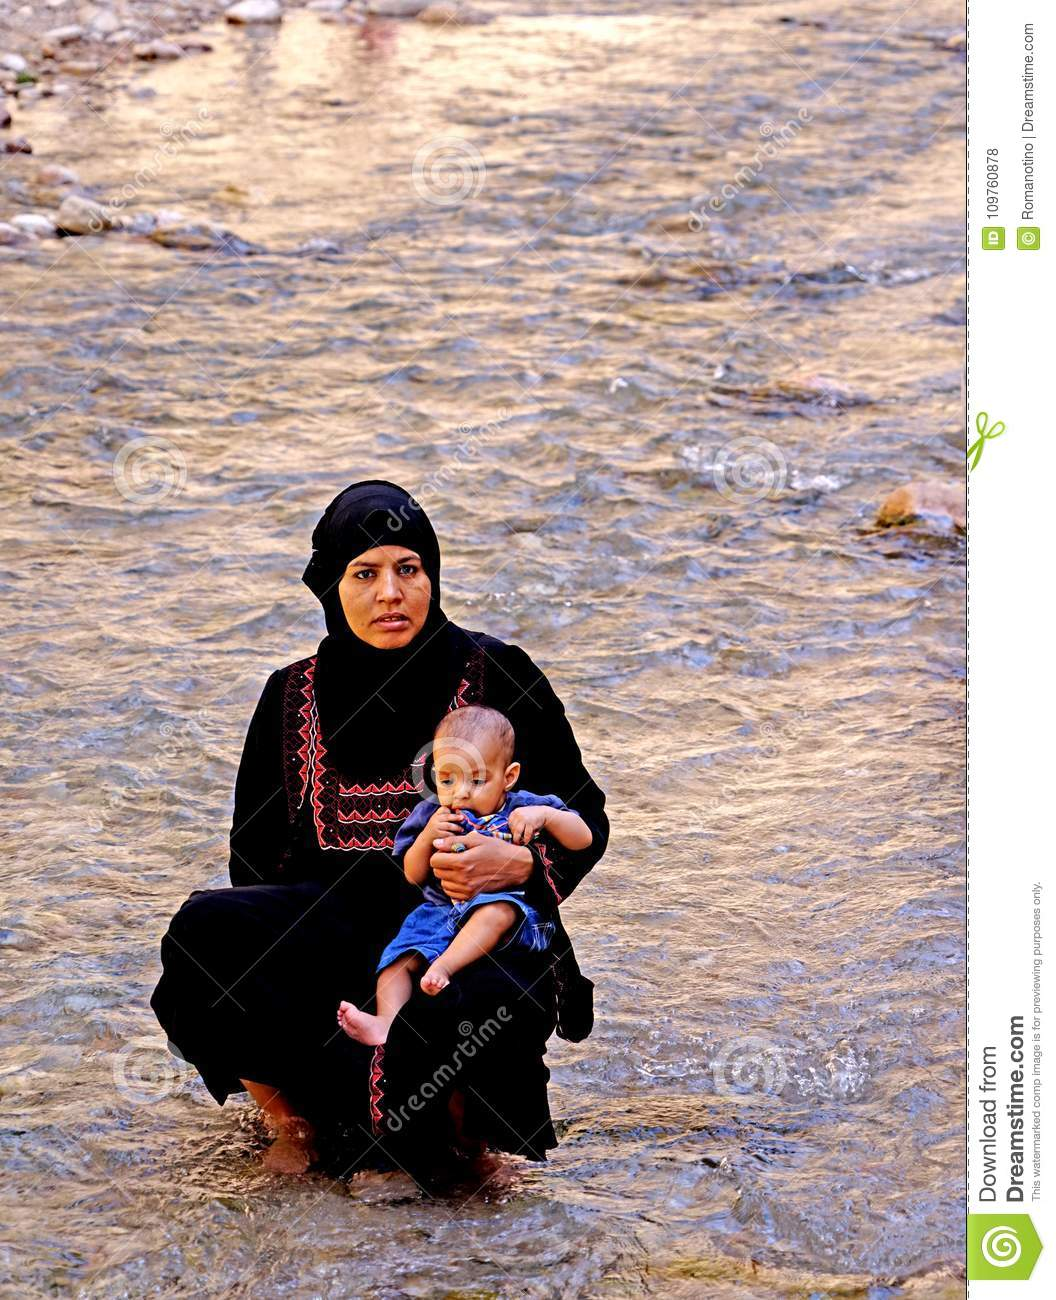 Woman with her baby in the river of The Todra gorges in Morocco